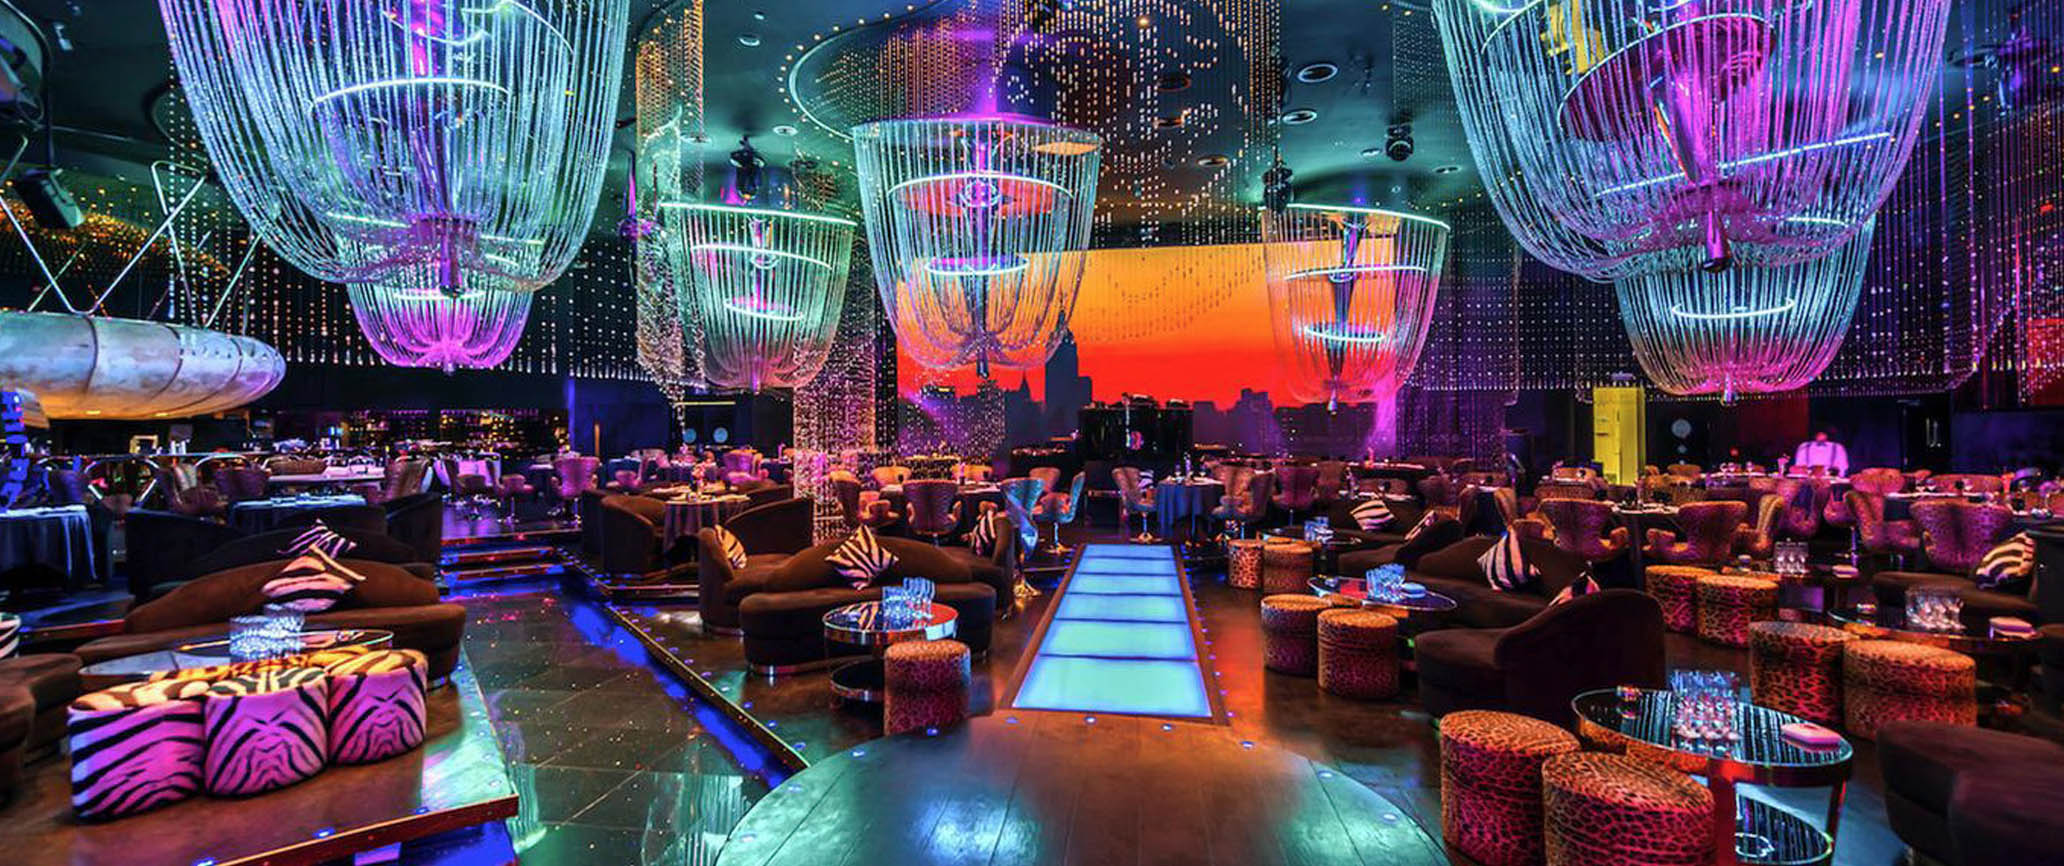 CAVALLI CLUB AT FAIRMONT HOTEL